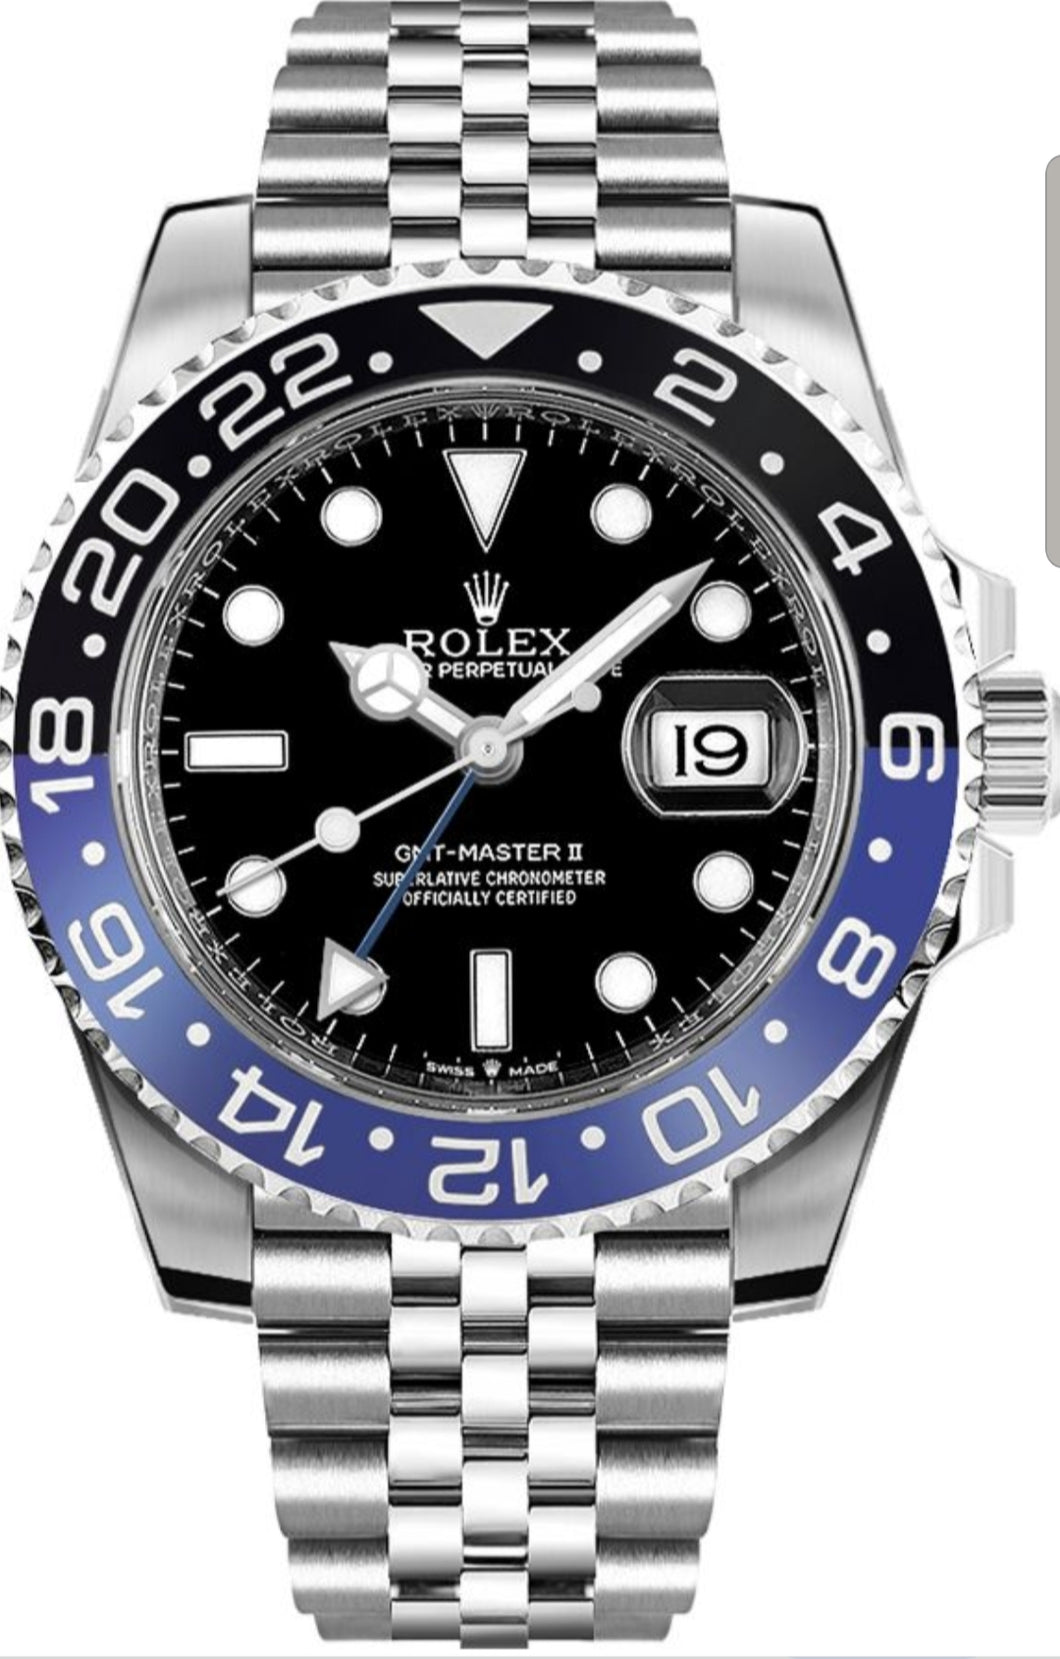 AUTOMATIC ROLEX DEEPSEA 116660 batman